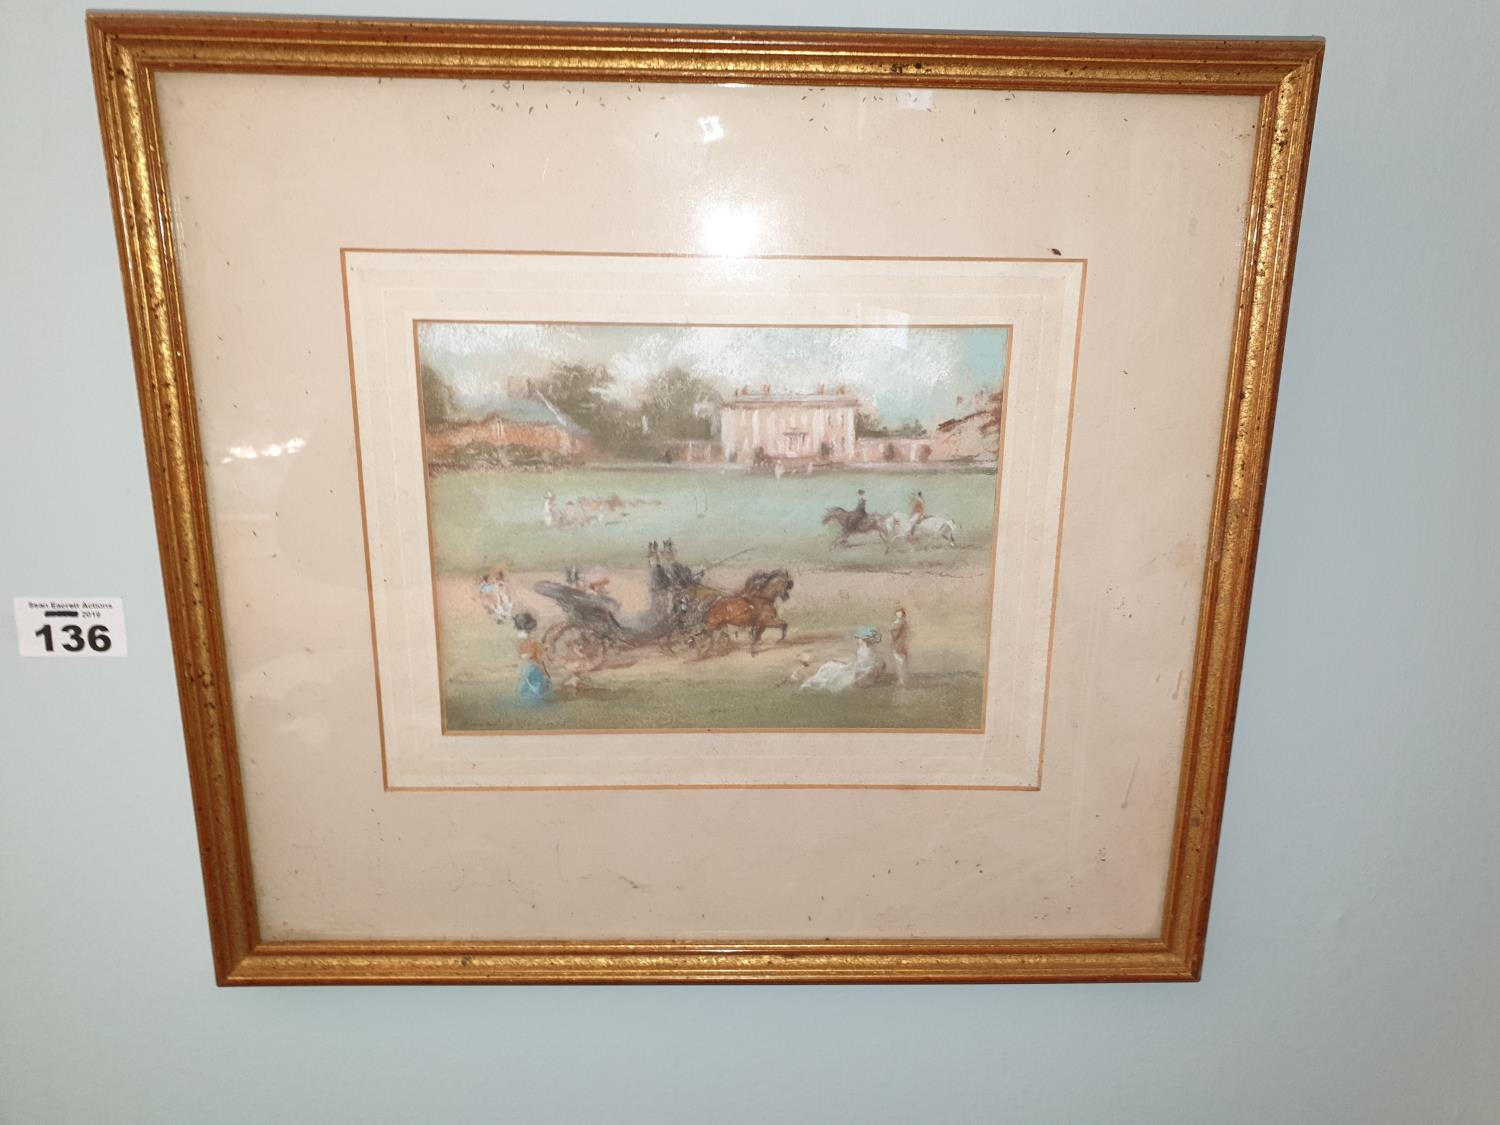 Lot 136 - A Pastel Picture of a 19th Century scene.